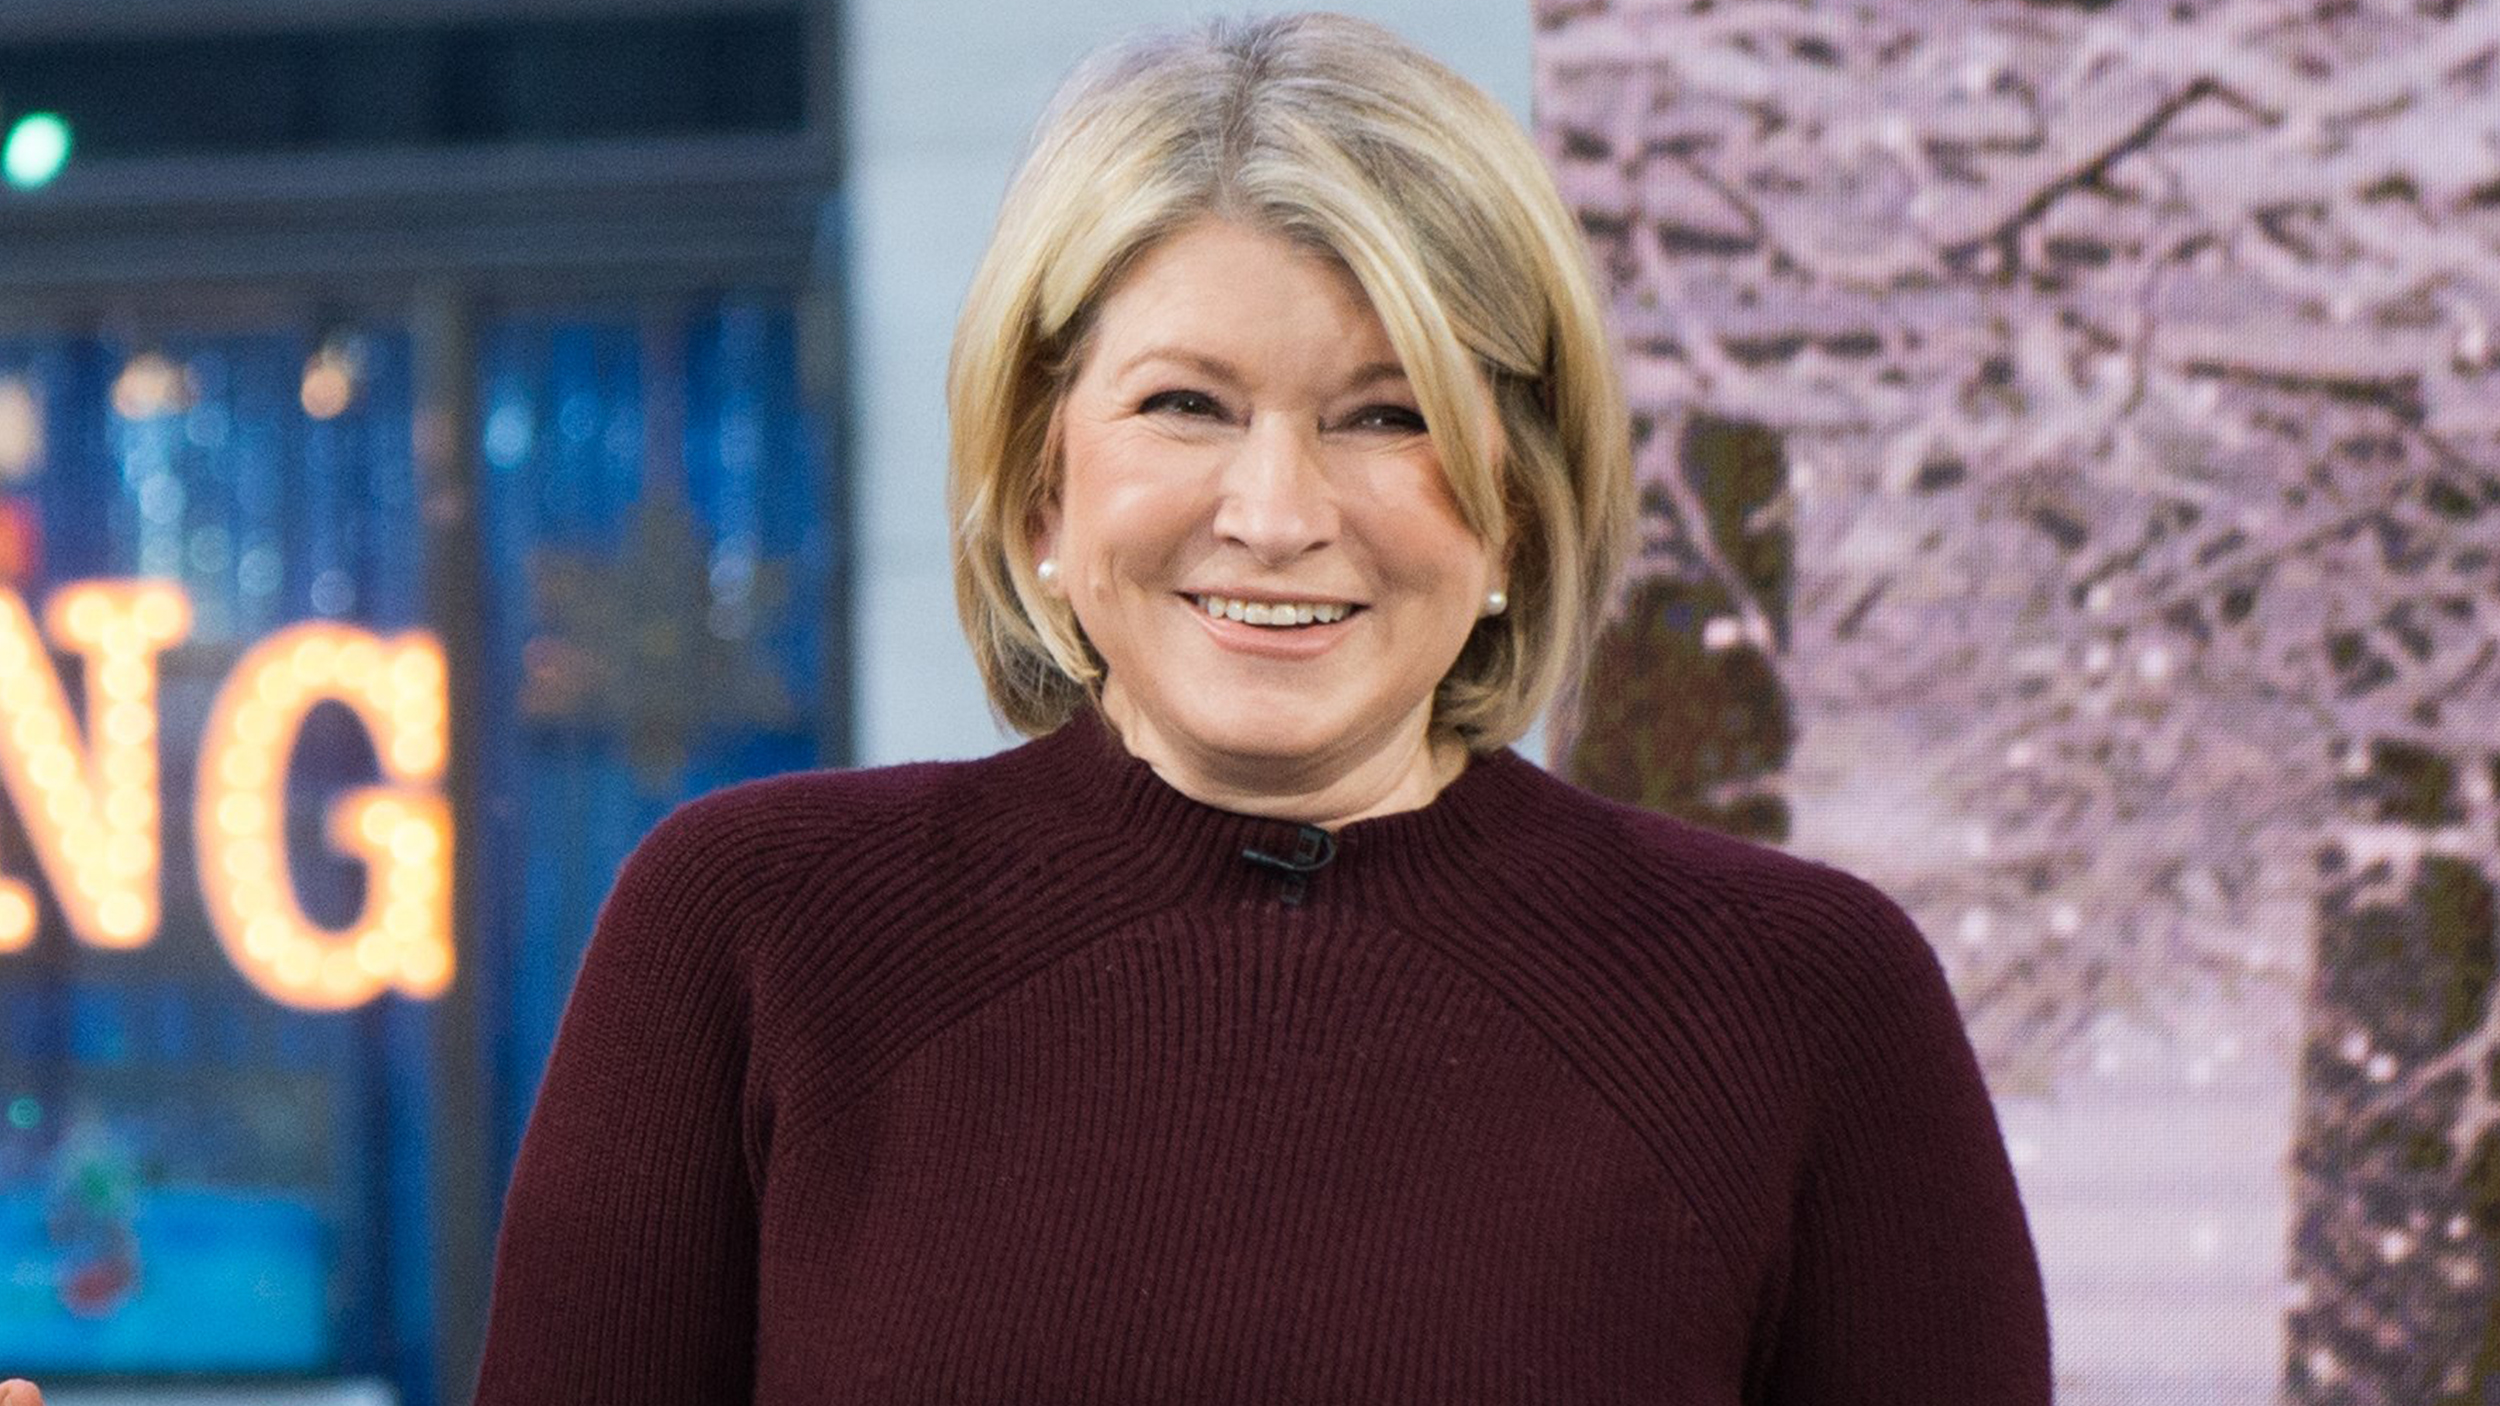 Martha stewart dating today show